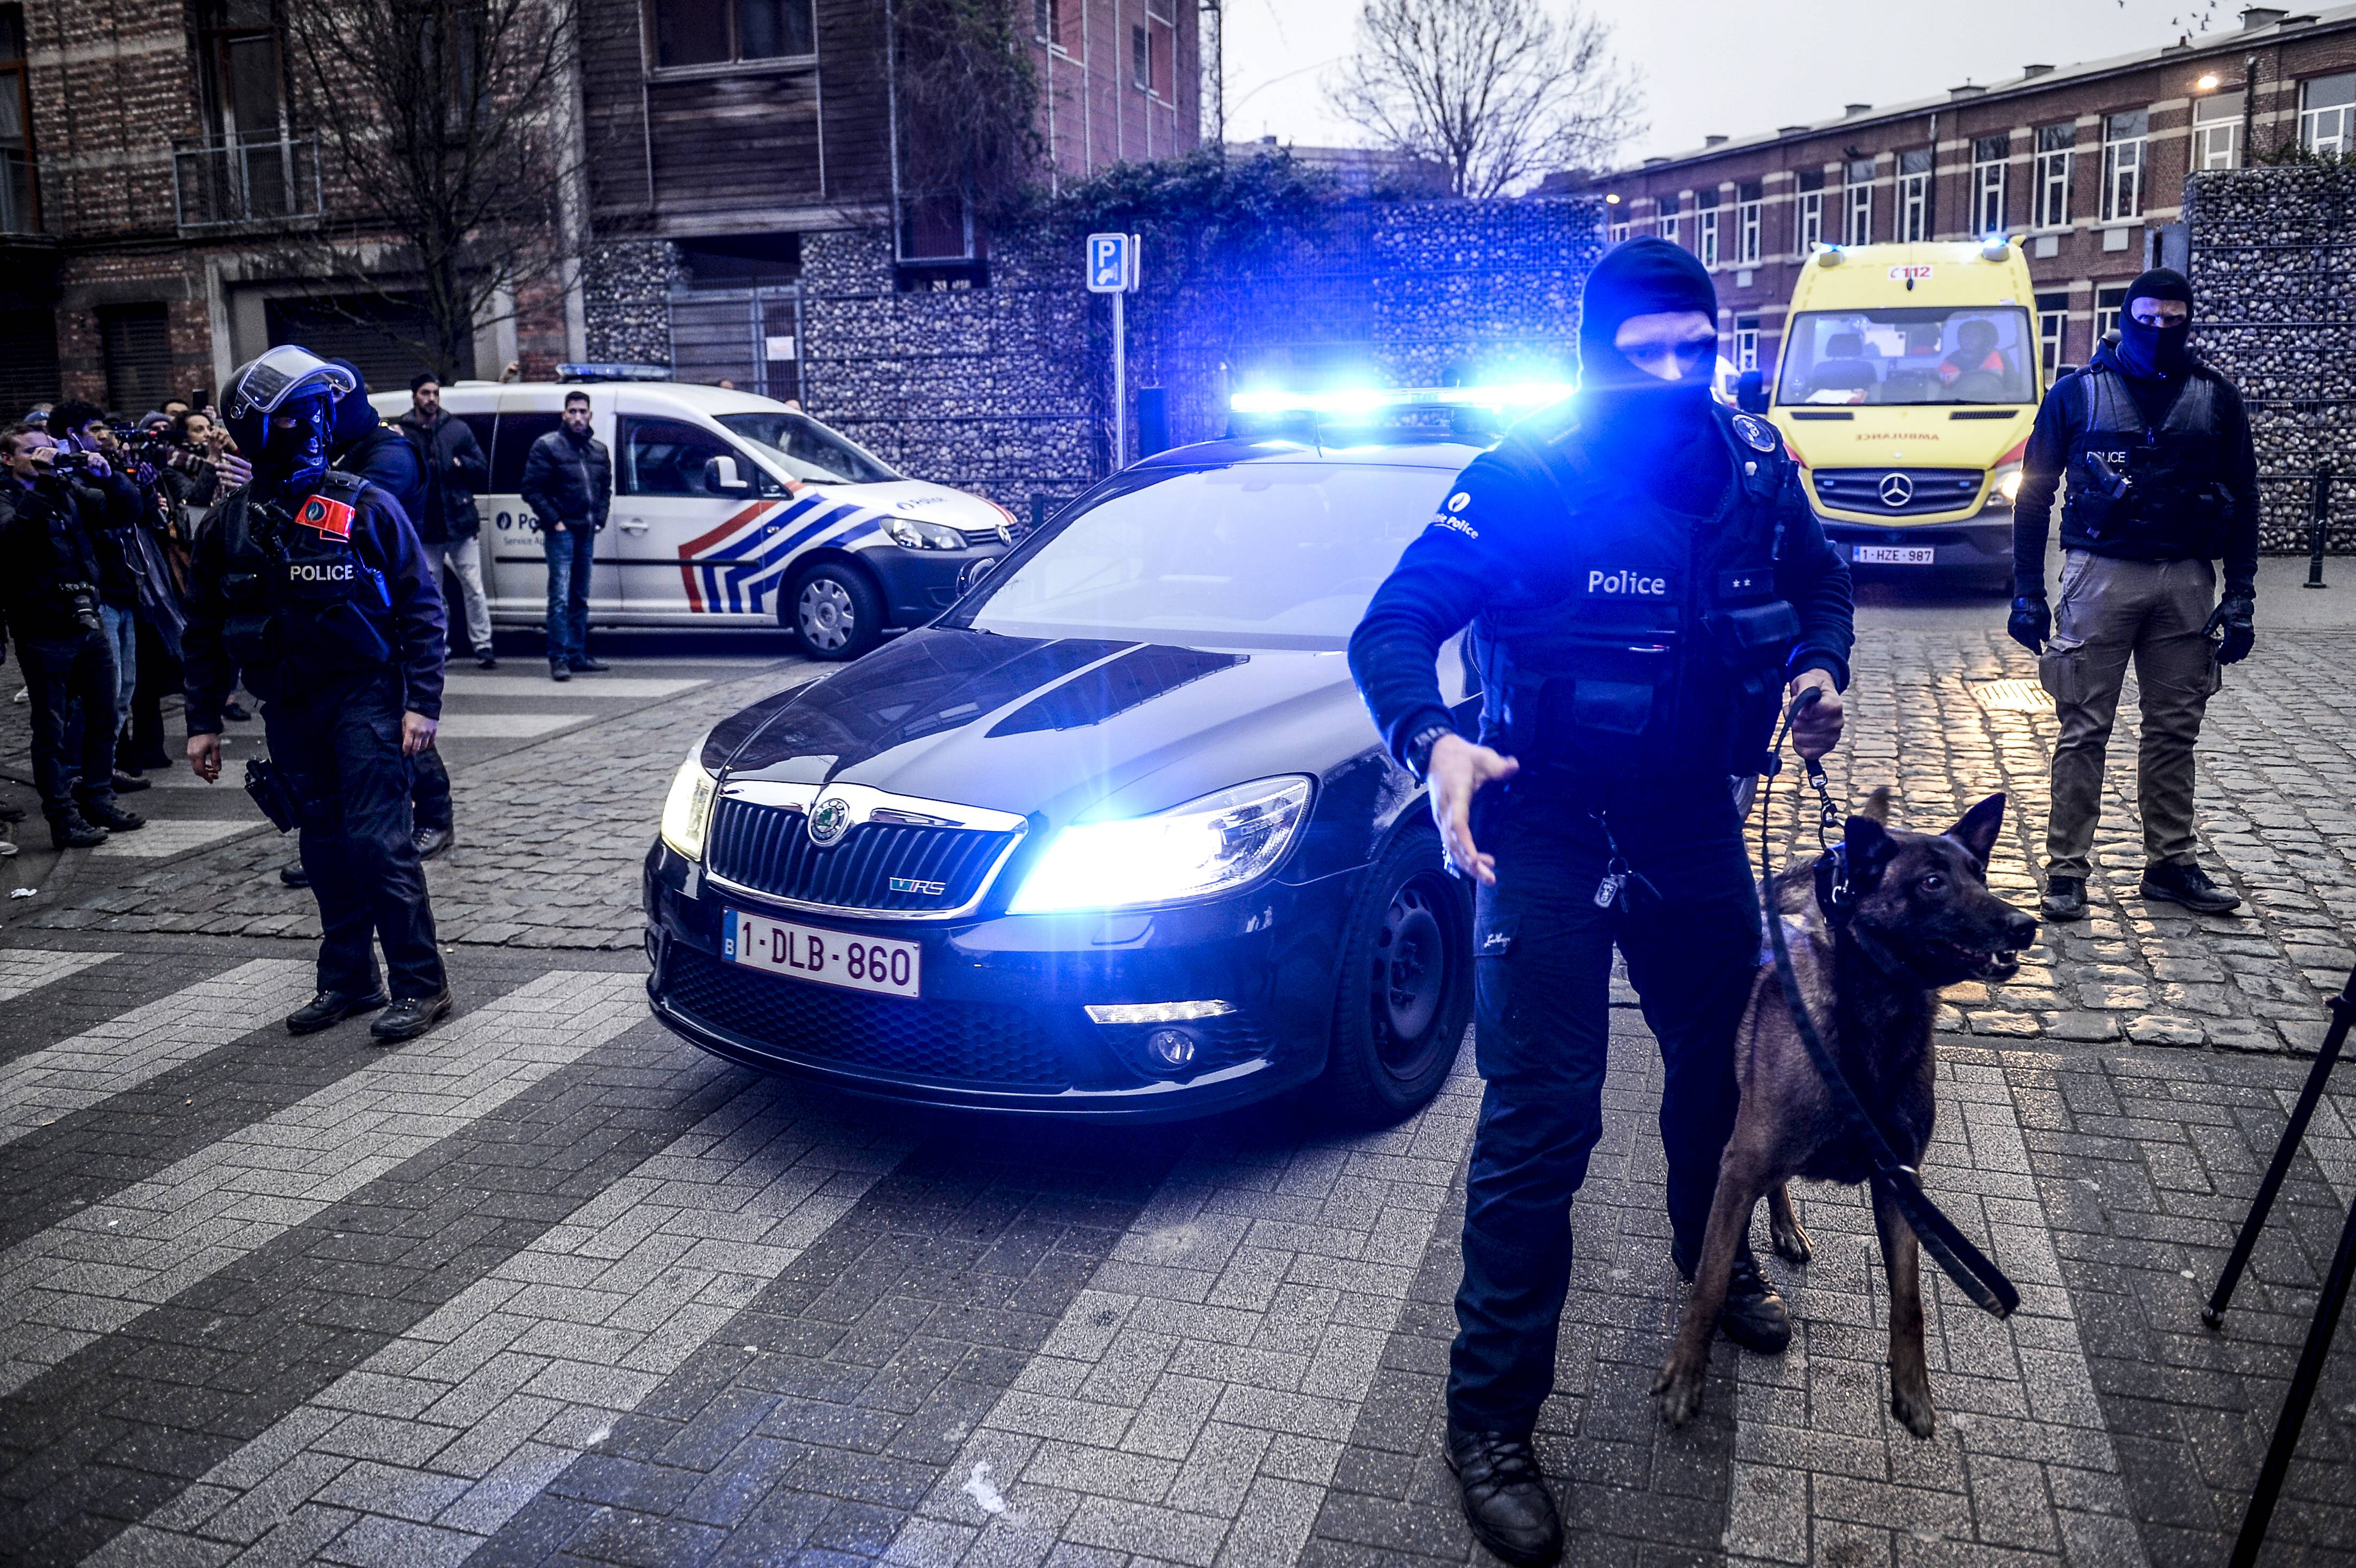 The police escorts an ambulance, which probably transports Salah Abdeslam, during a police action in the Rue des Quatre-Vents - Vierwindenstraat street in Sint-Jans-Molenbeek - Molenbeek-Saint-Jean, Brussels, Friday 18 March 2016. According to the first information Salah Abdeslam was arrested during the searches, he is considered one of the main suspects in the November 13th Paris terrorist attacks and Tuesday s shooting in Vorst. PUBLICATIONxINxGERxSUIxAUTxONLY DIRKxWAEM 04816941 The Police escorts to Ambulance Which probably Transports Salah Abdeslam during a Police Action in The Rue the Quatre Vents Street in Sint Jans MOLENBEEK MOLENBEEK Saint Jean Brussels Friday 18 March 2016 According to The First Information Salah Abdeslam what Arrested during The searches he IS considered One of The Main suspects in The November 13th Paris Terrorist Attacks and Tuesday S Shooting in Vorst PUBLICATIONxINxGERxSUIxAUTxONLY 04816941